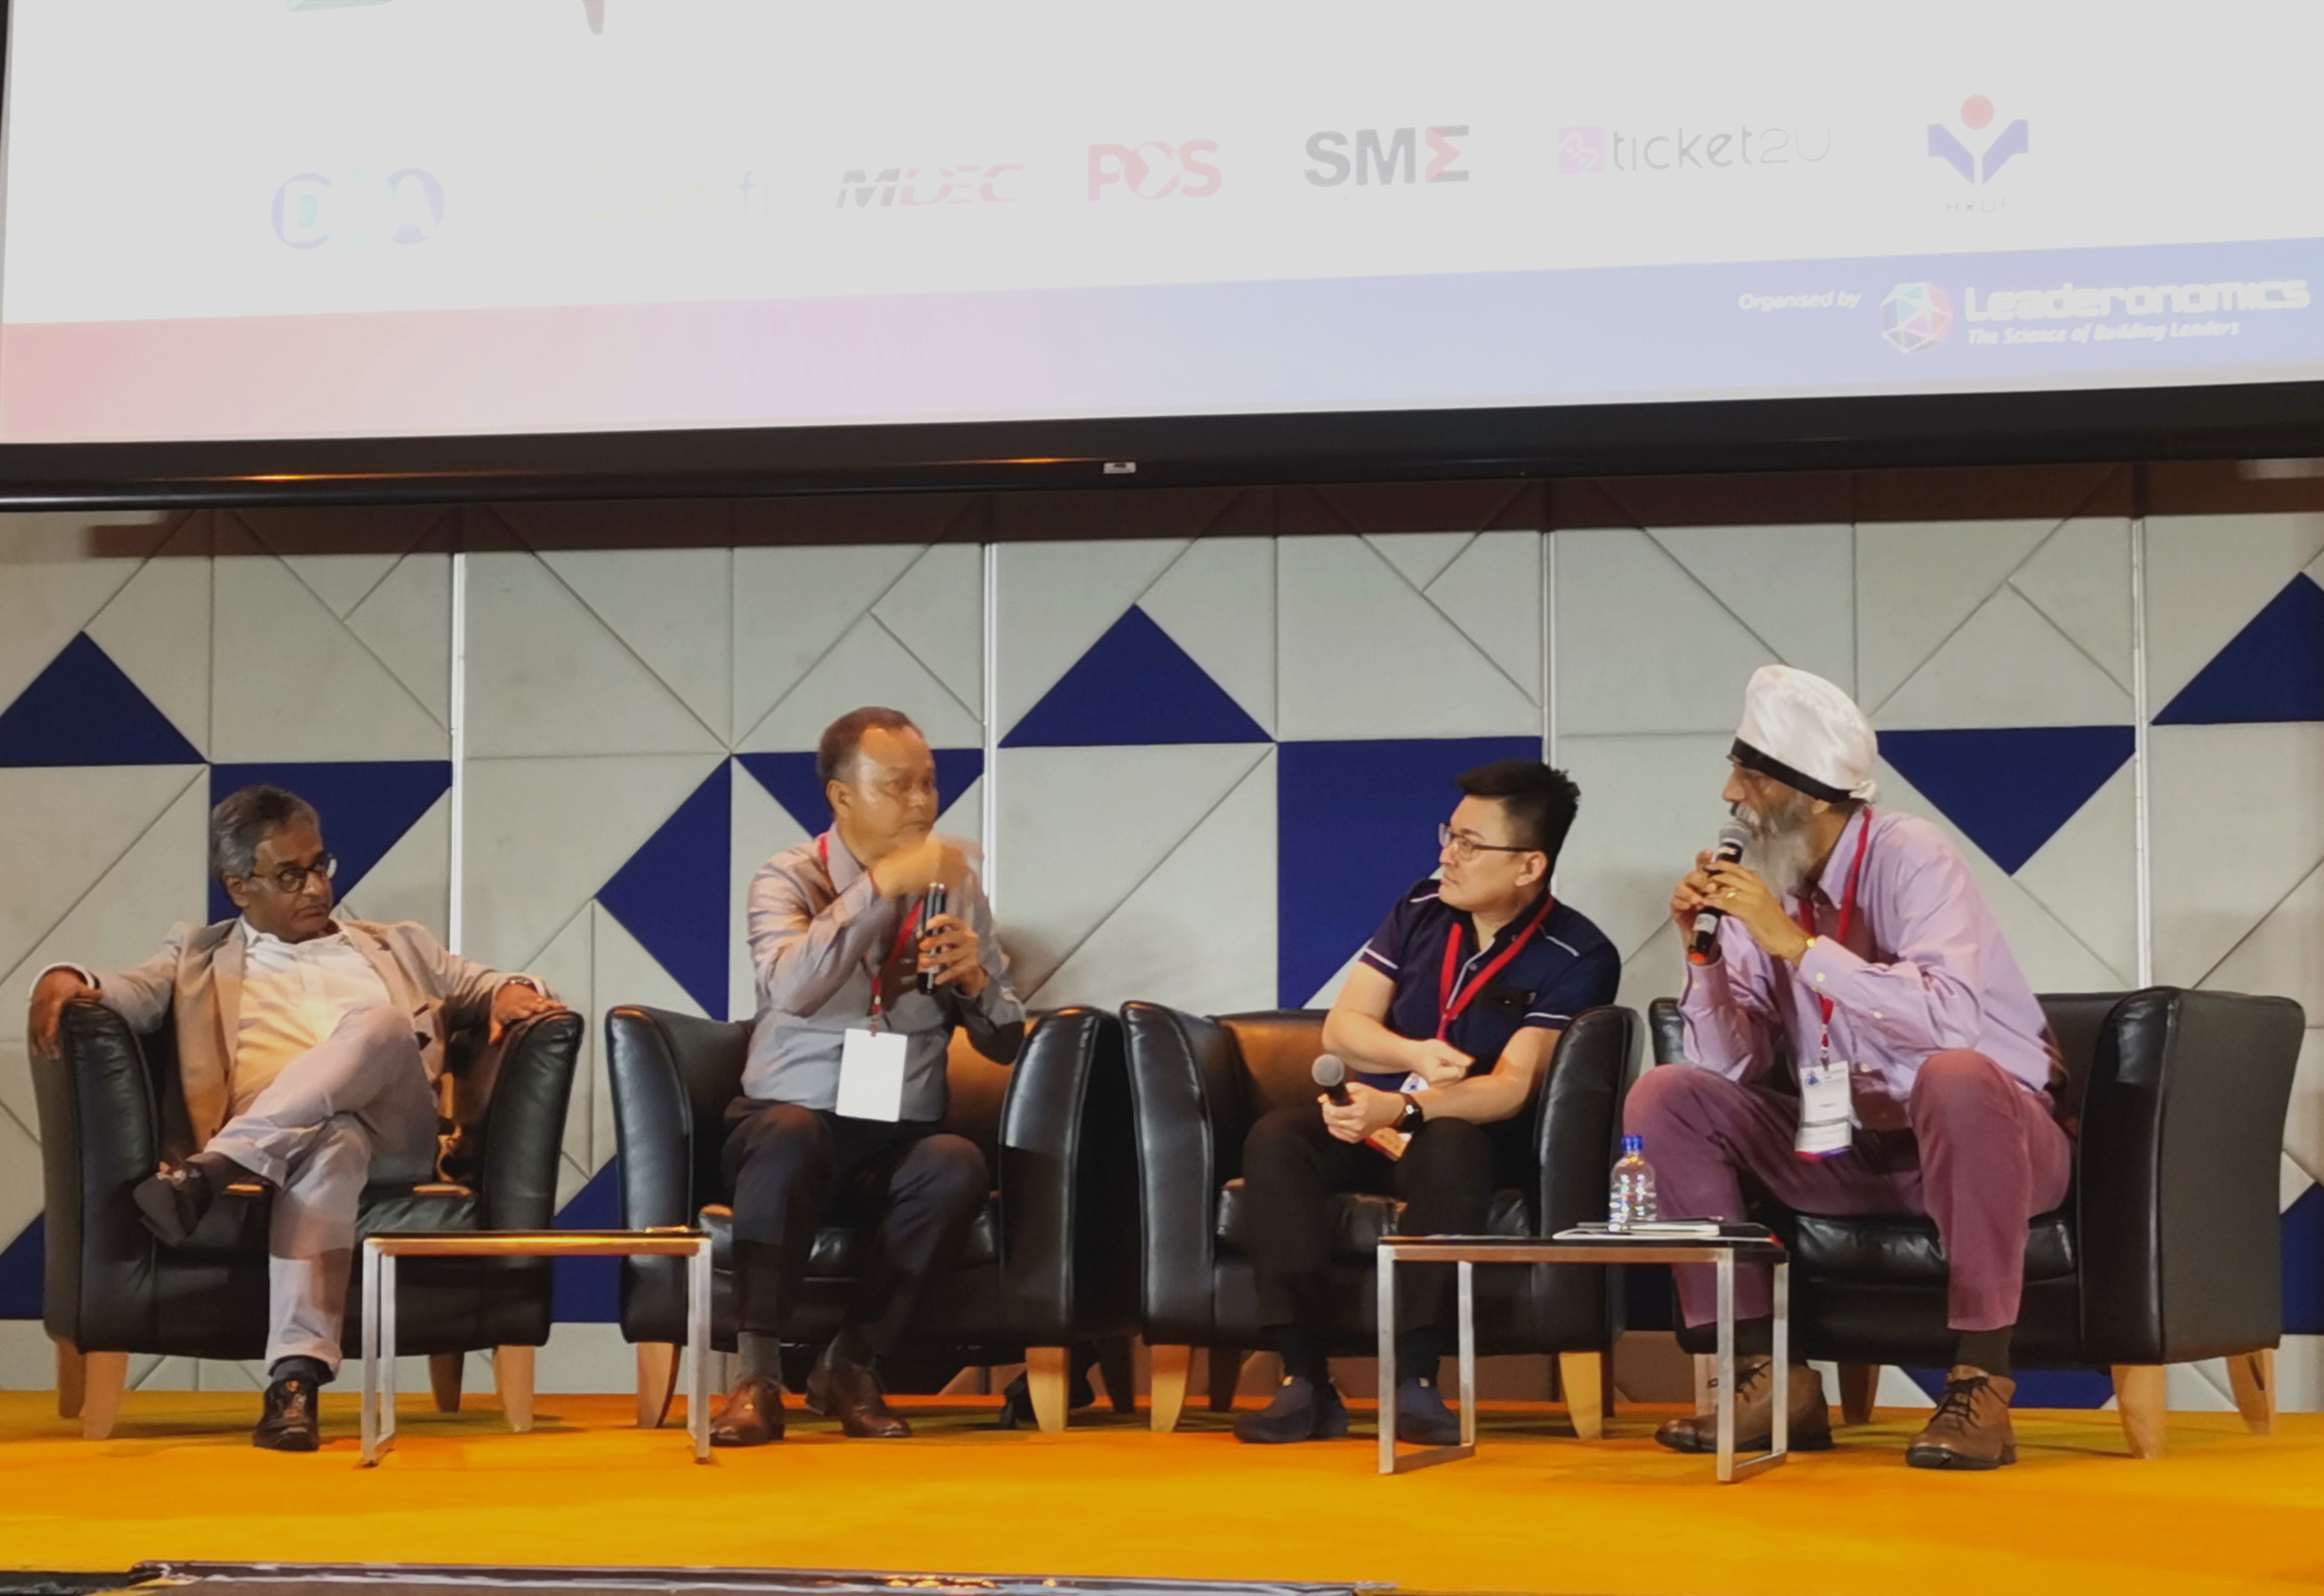 MDEC vice president for enterprise development Gopi Ganesalingam, Kat Technologies founder Khairol Annuar bin Mohamad Tawi, iTalent Management Sdn Bhd founder and chief executive officer Victor Phang and DNA founder Karamjit Singh